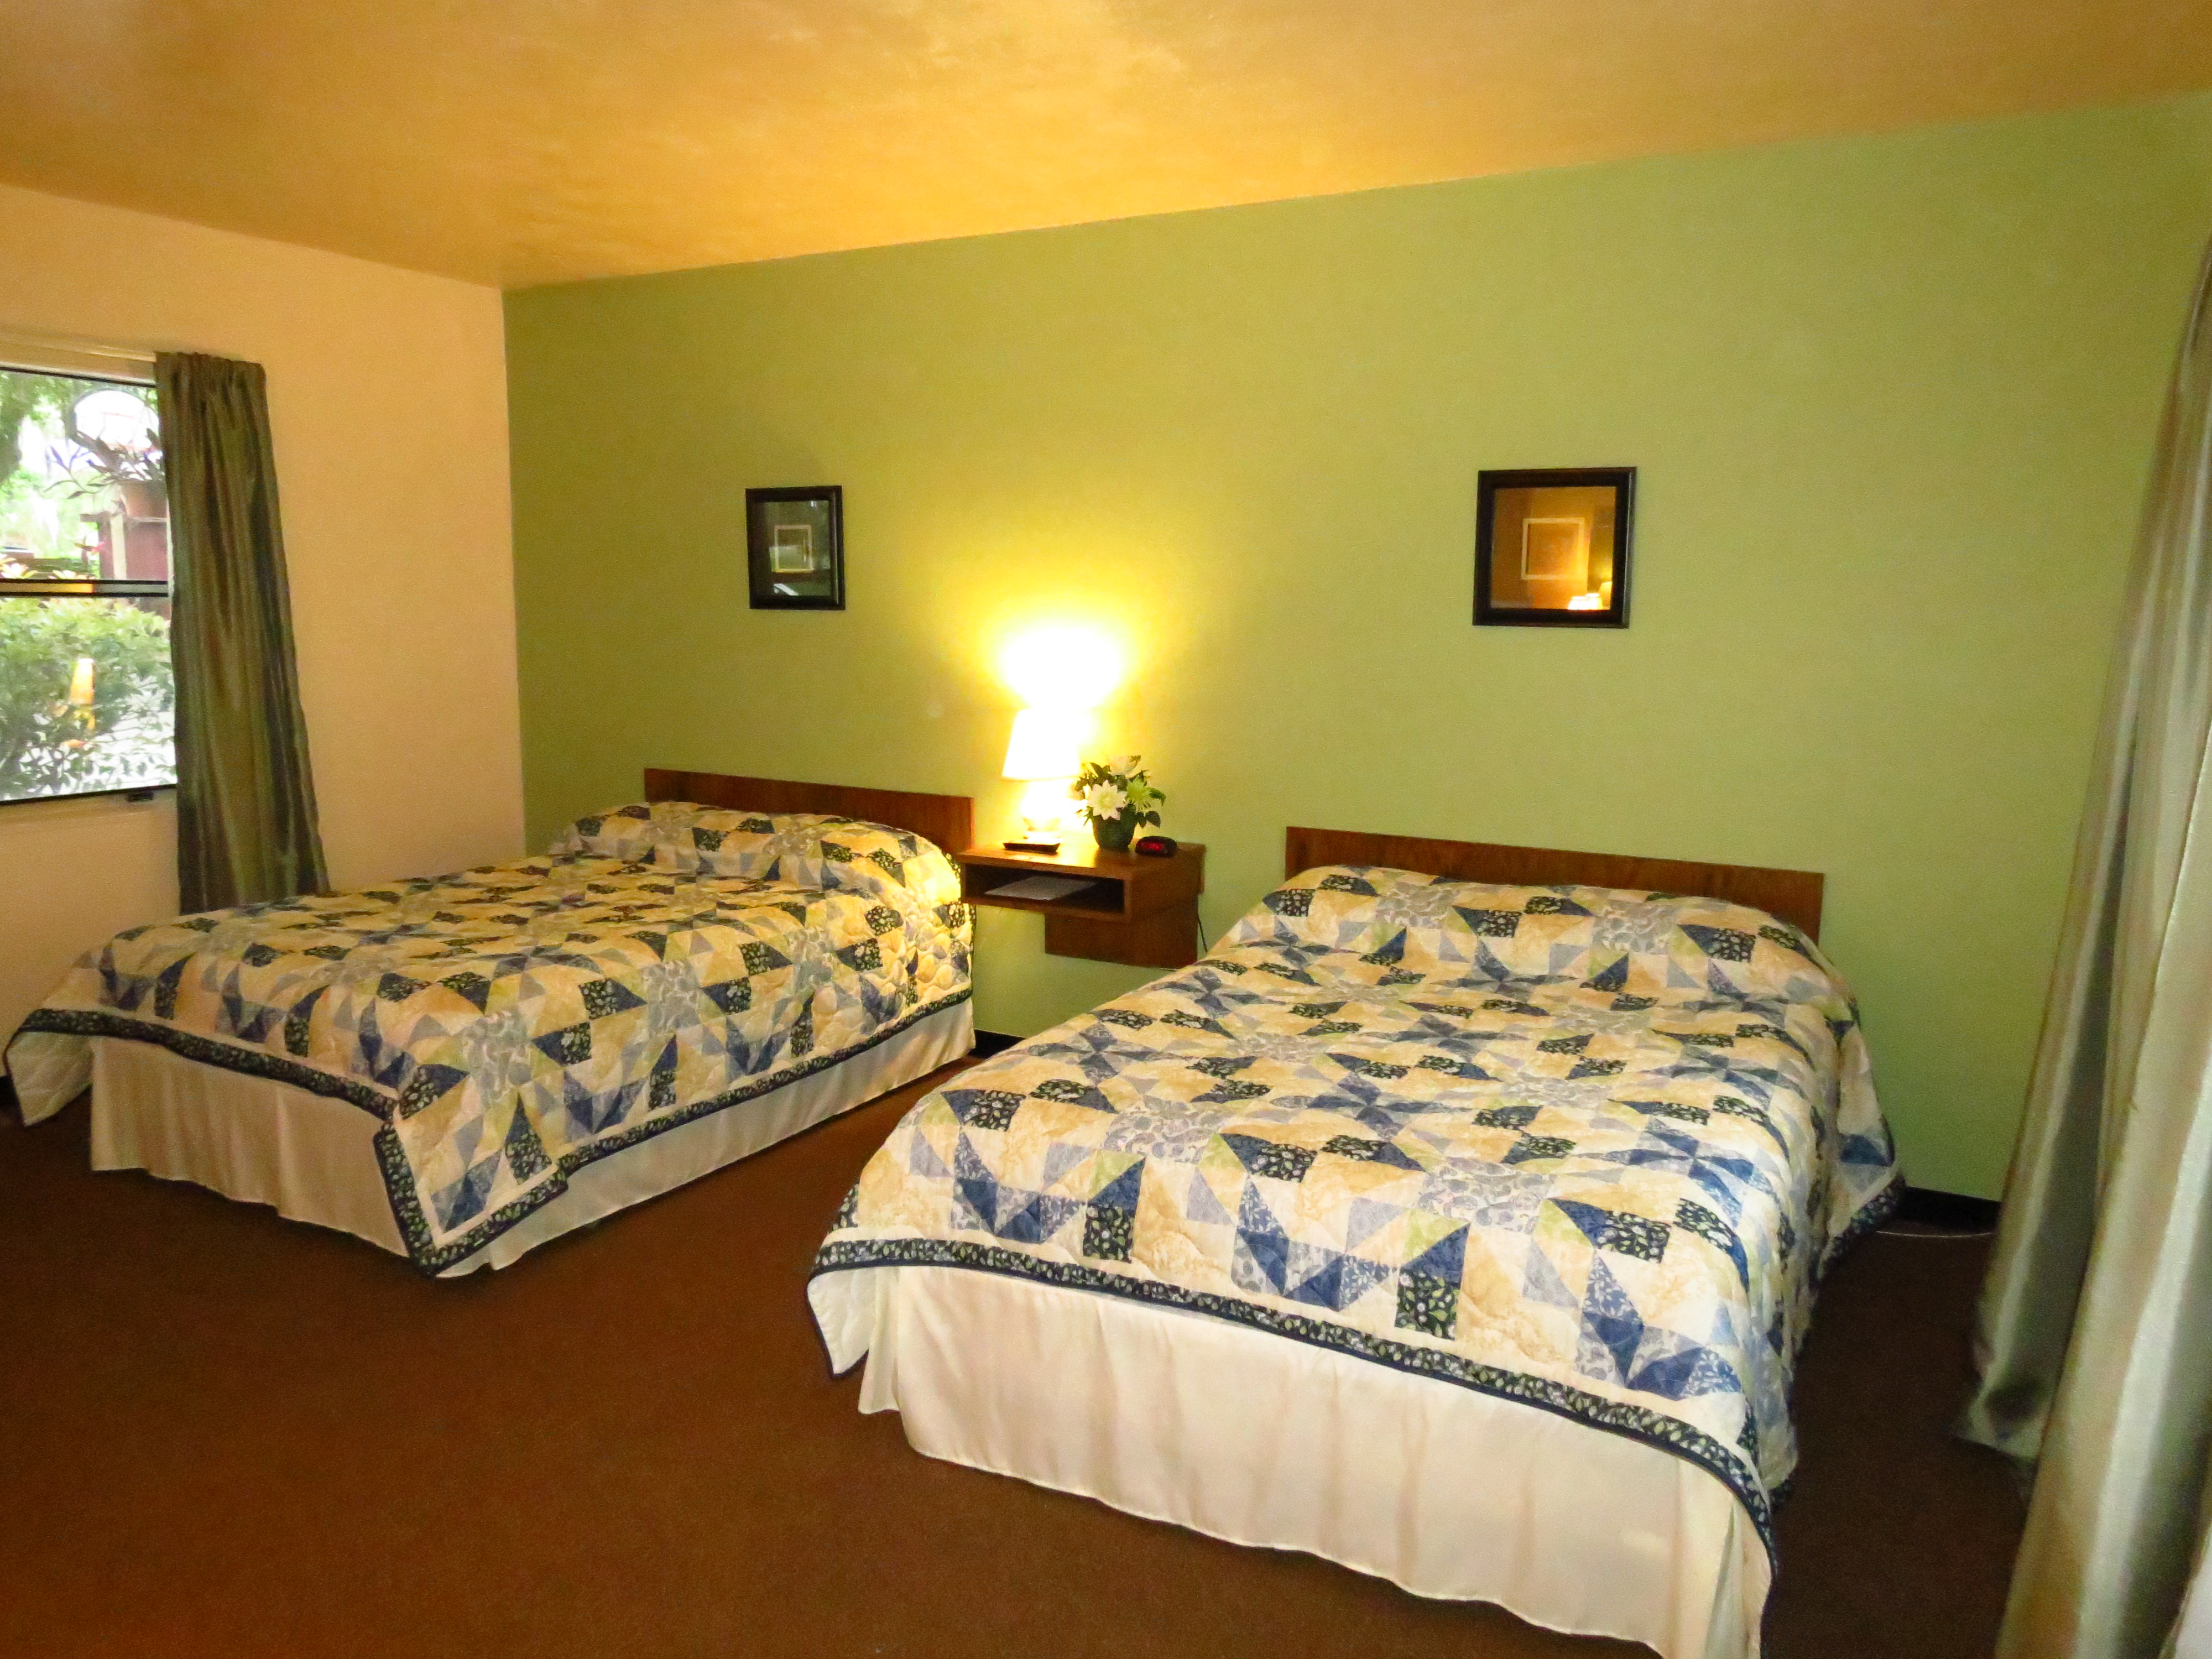 Double beds motel room||||